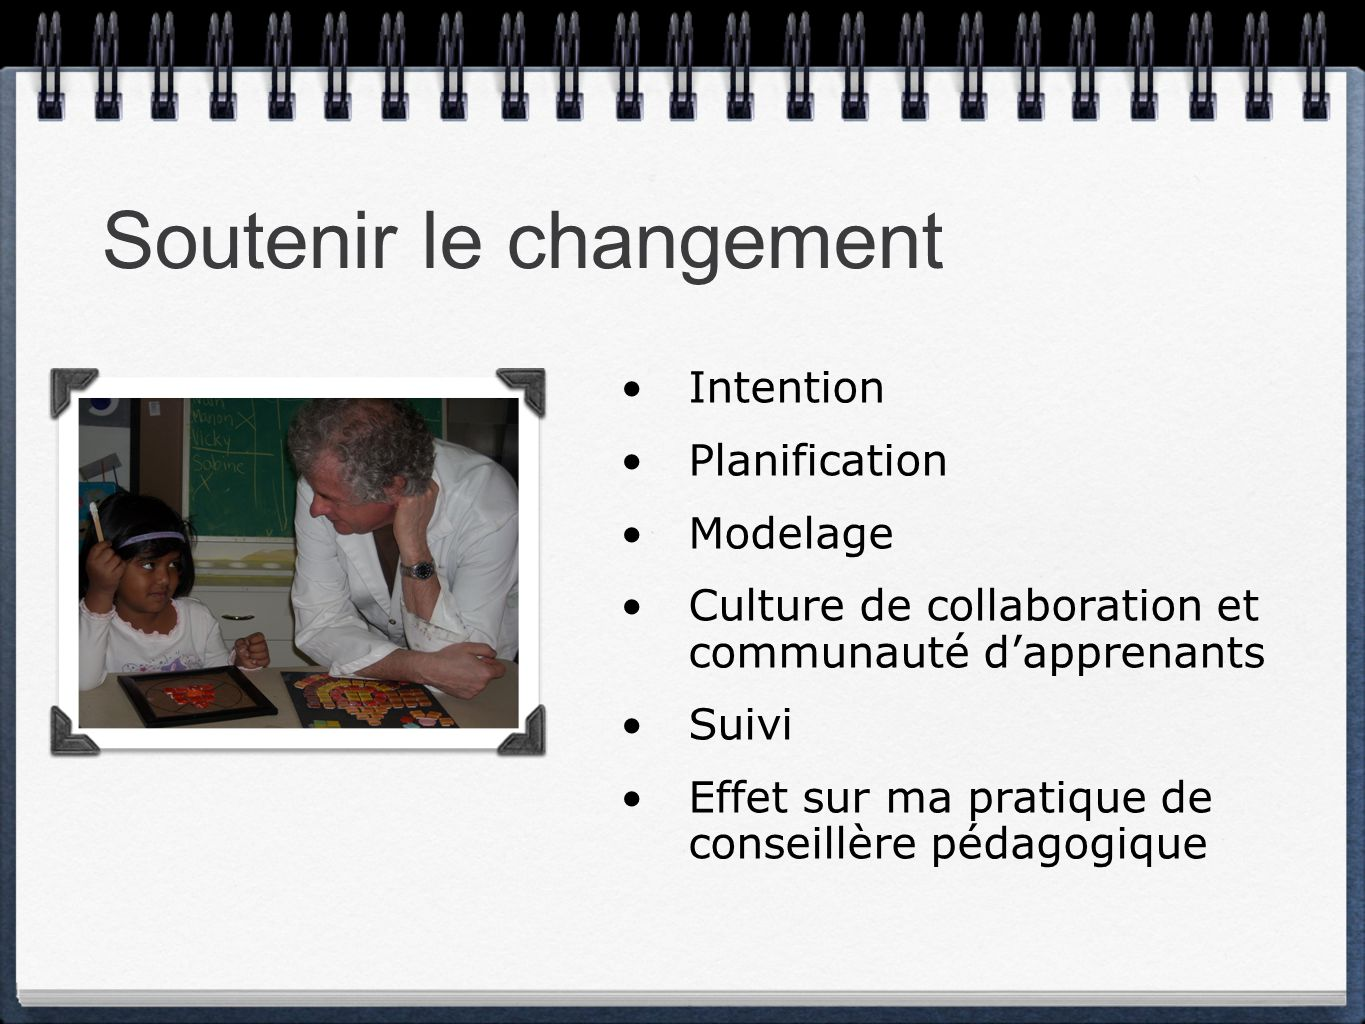 Soutenir le changement Intention Planification Modelage Culture de collaboration et communauté dapprenants Suivi Effet sur ma pratique de conseillère pédagogique